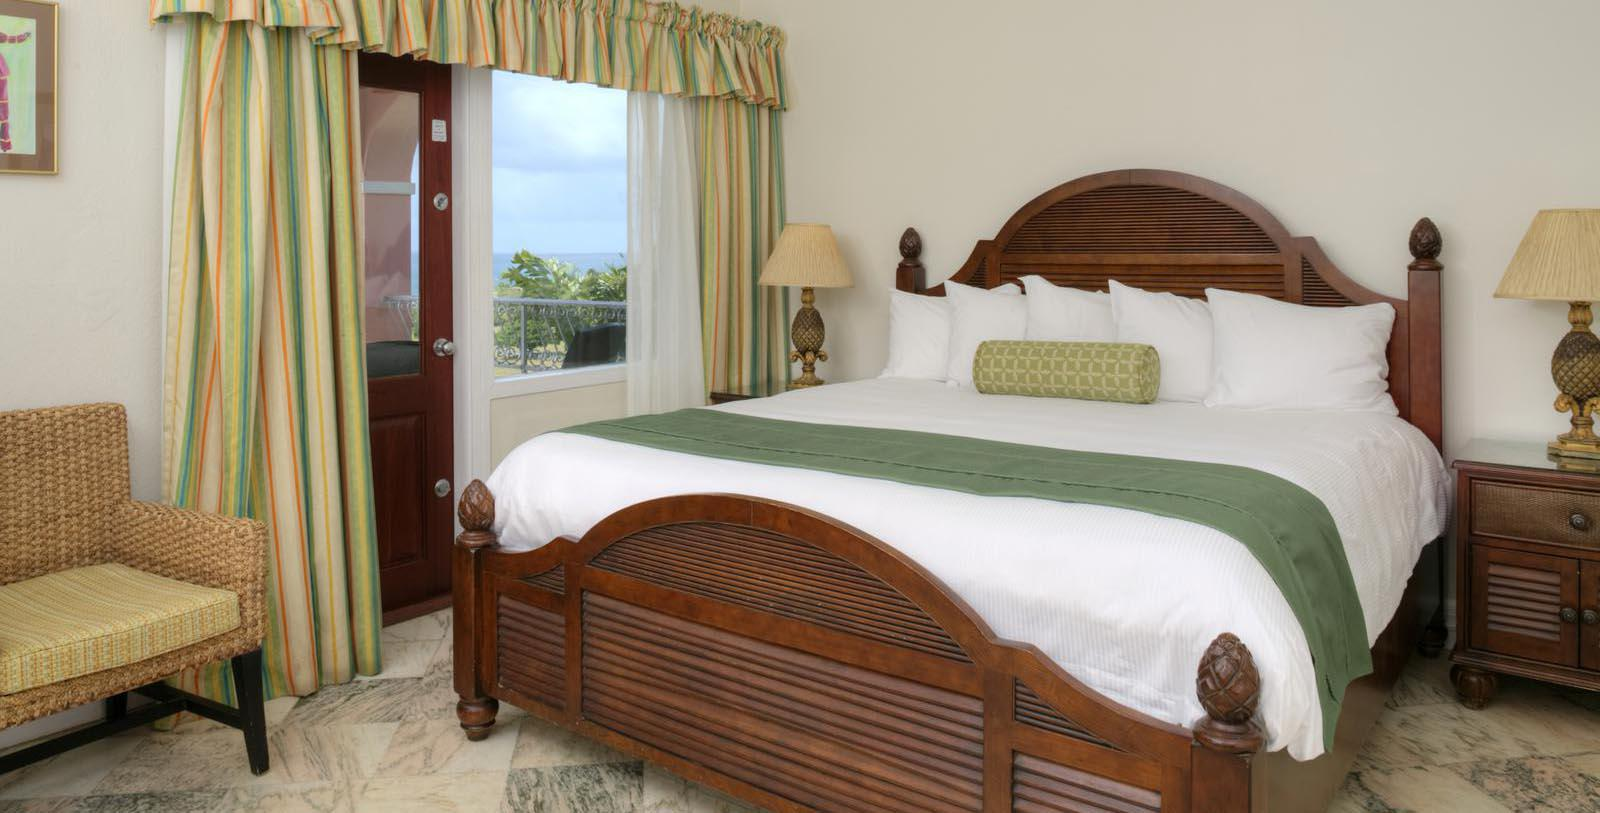 Image of Guestroom Interior The Buccaneer, 1653, Member of Historic Hotels of America, in Christiansted, U.S. Virgin Islands, Accommodations